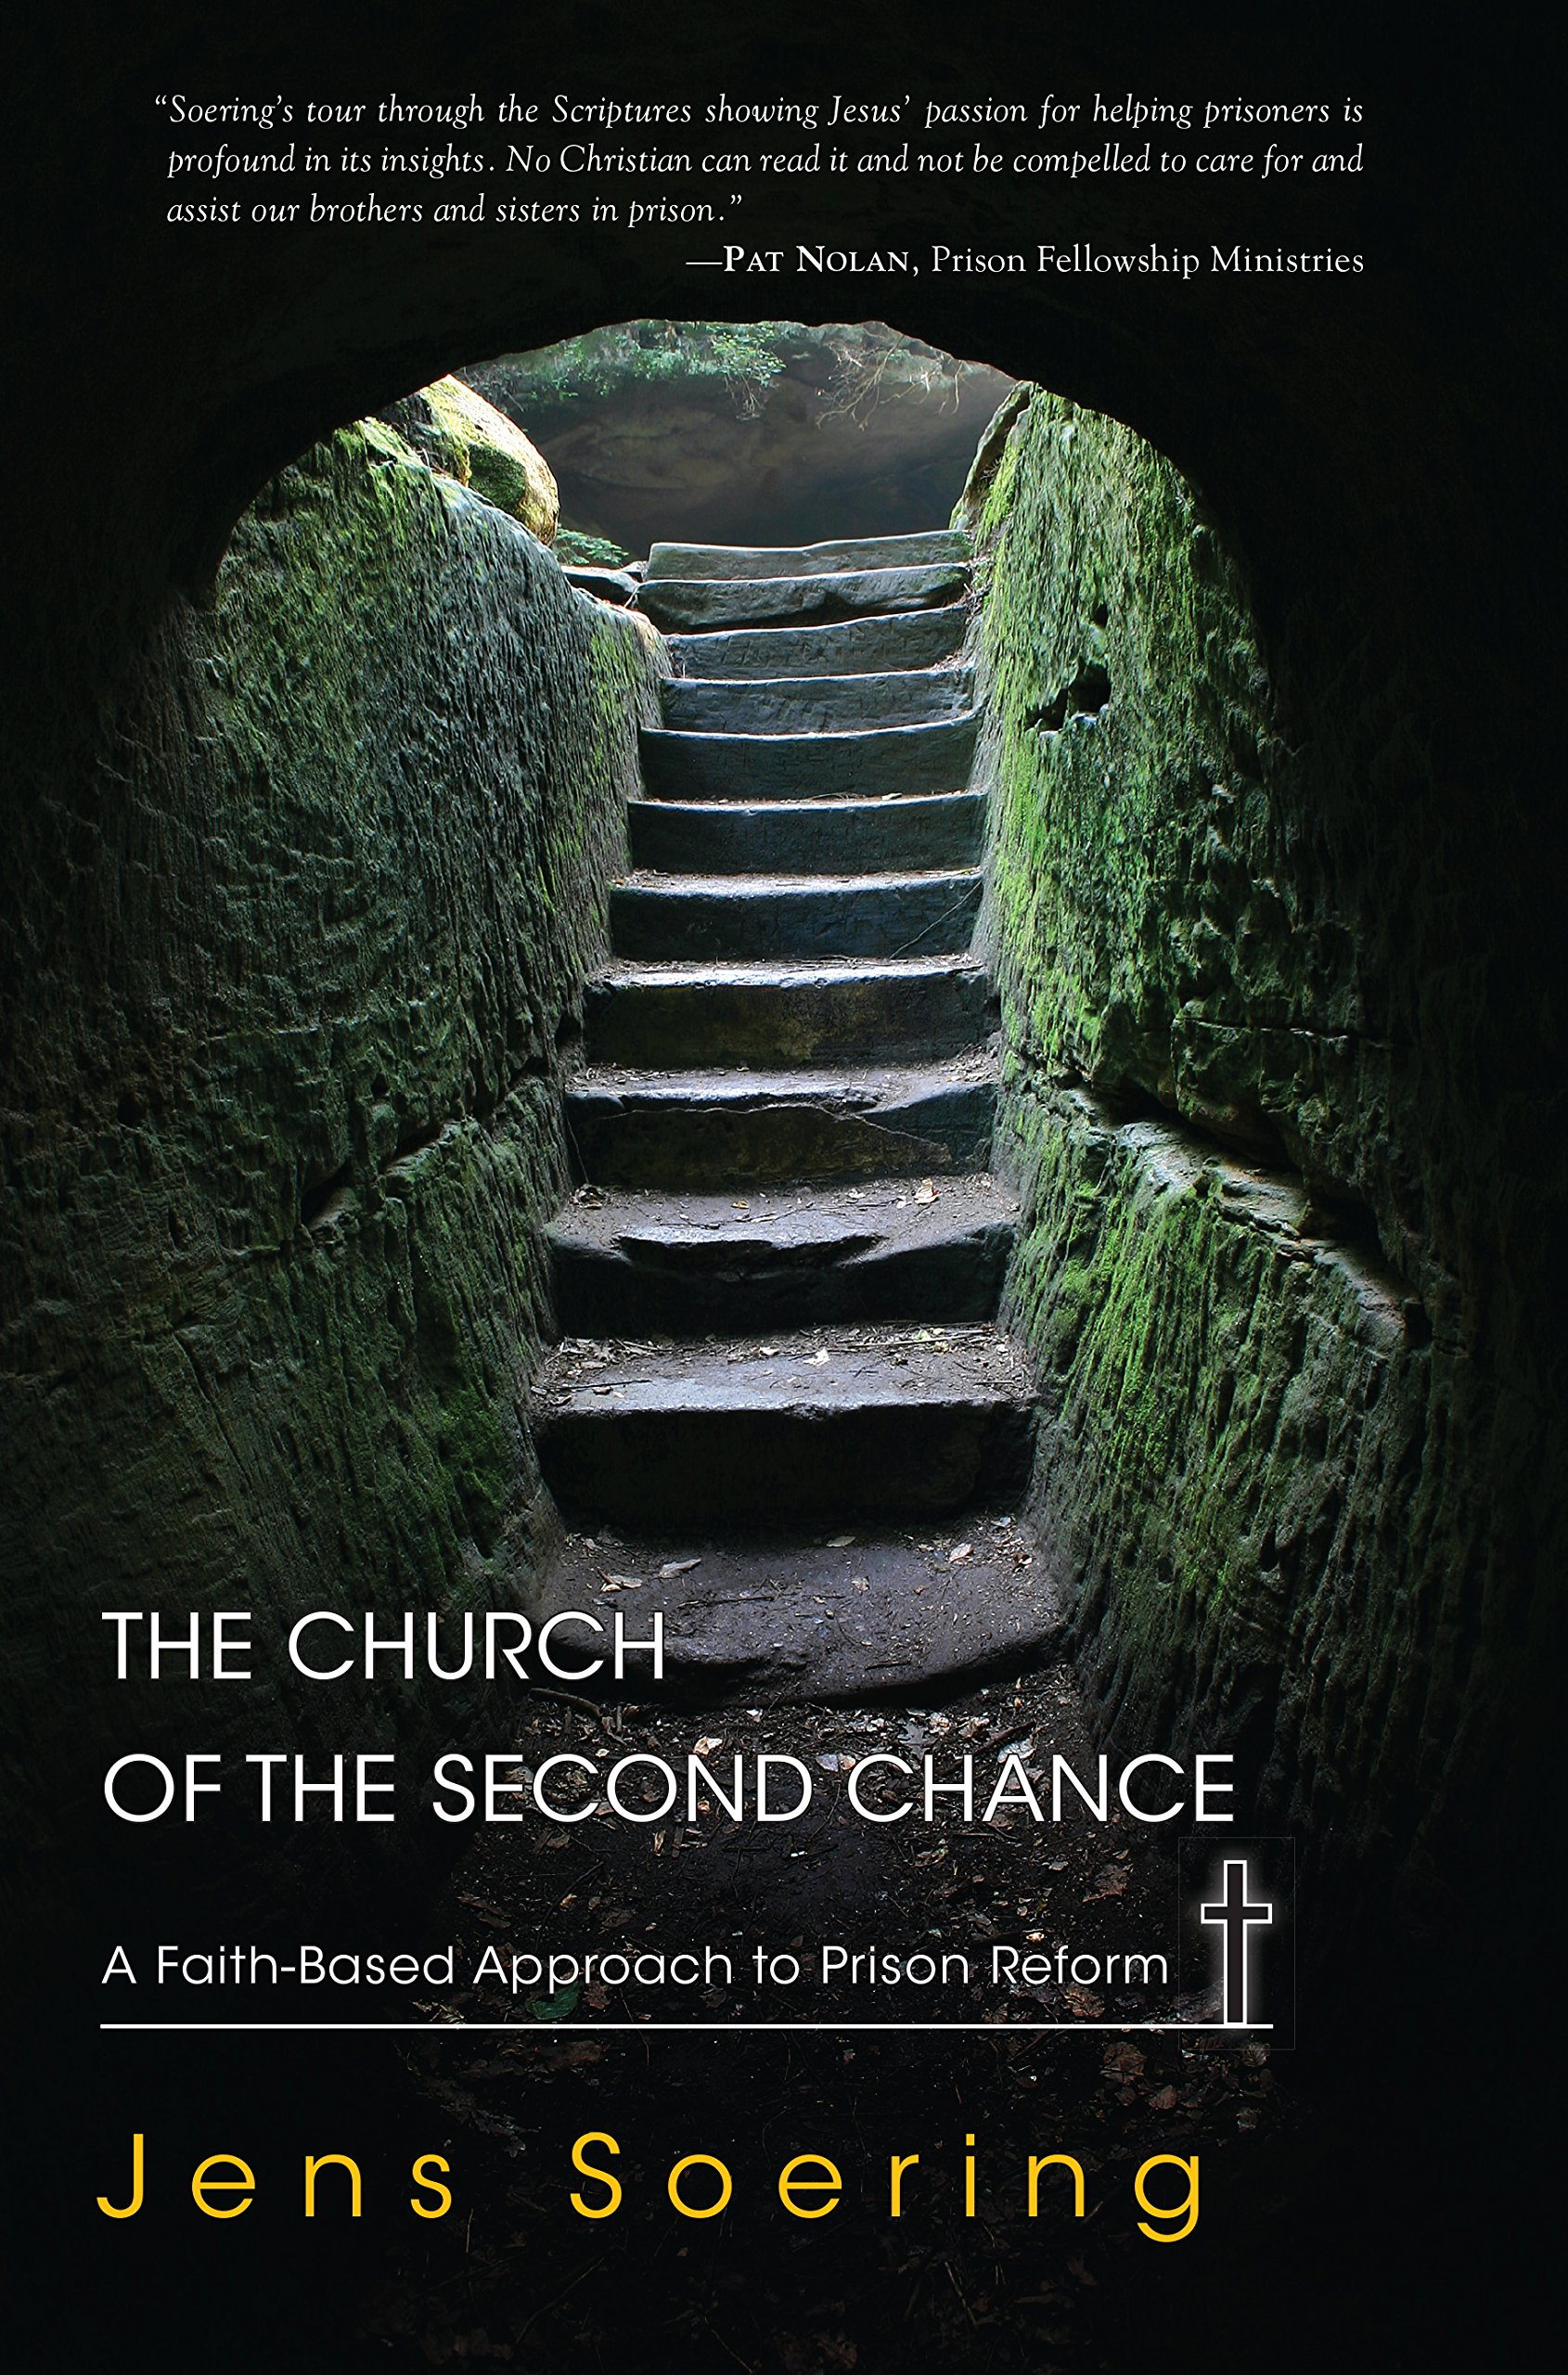 the church of the second chance a faith based approach to prison the church of the second chance a faith based approach to prison reform jens soering 9781590561126 com books